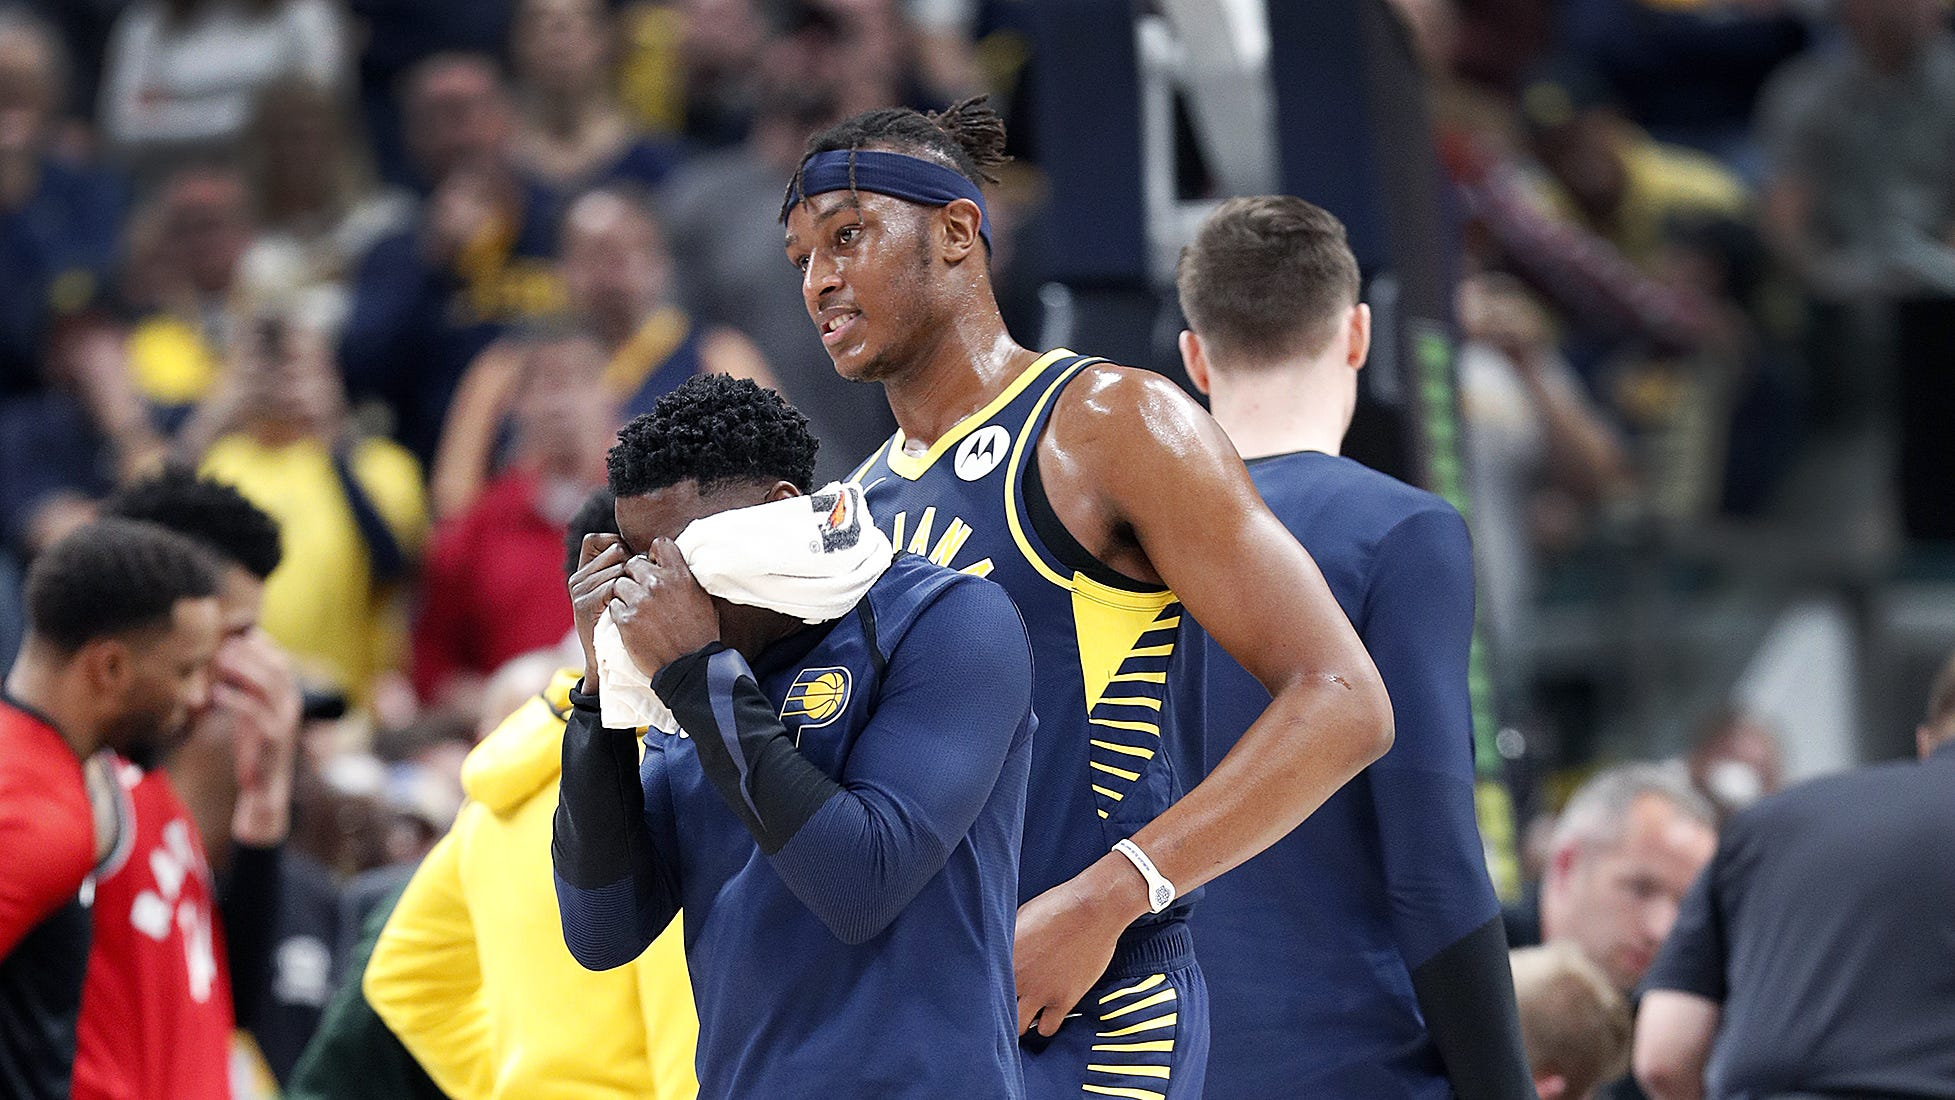 Indiana Pacers guard Darren Collison (2) and Myles Turner (33) can't watch as their teammate Victor Oladipo after he went down with a knee injury  in the first half of their game at Bankers Life Fieldhouse Saturday, Jan. 23, 2019.